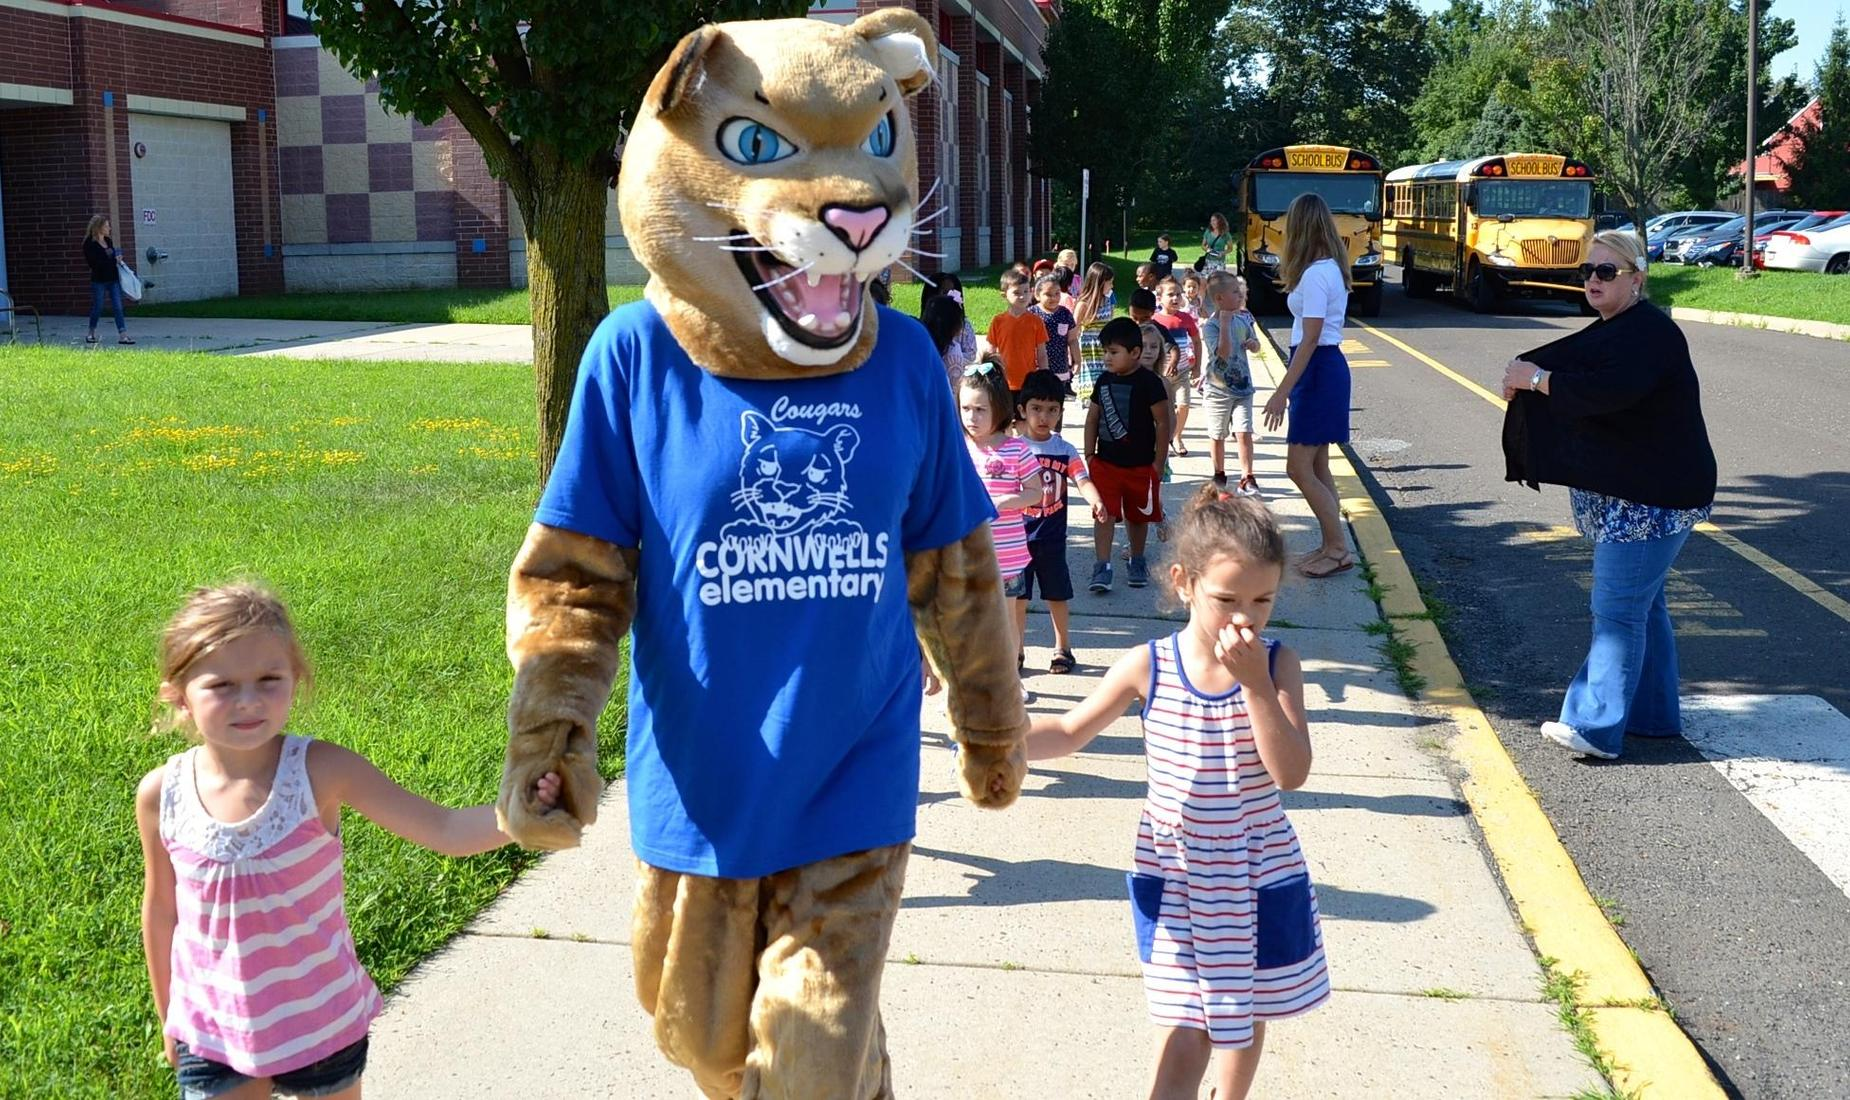 Cornwells Elementary mascot, the Cougar, holds hands with two girls and leads the others into school.